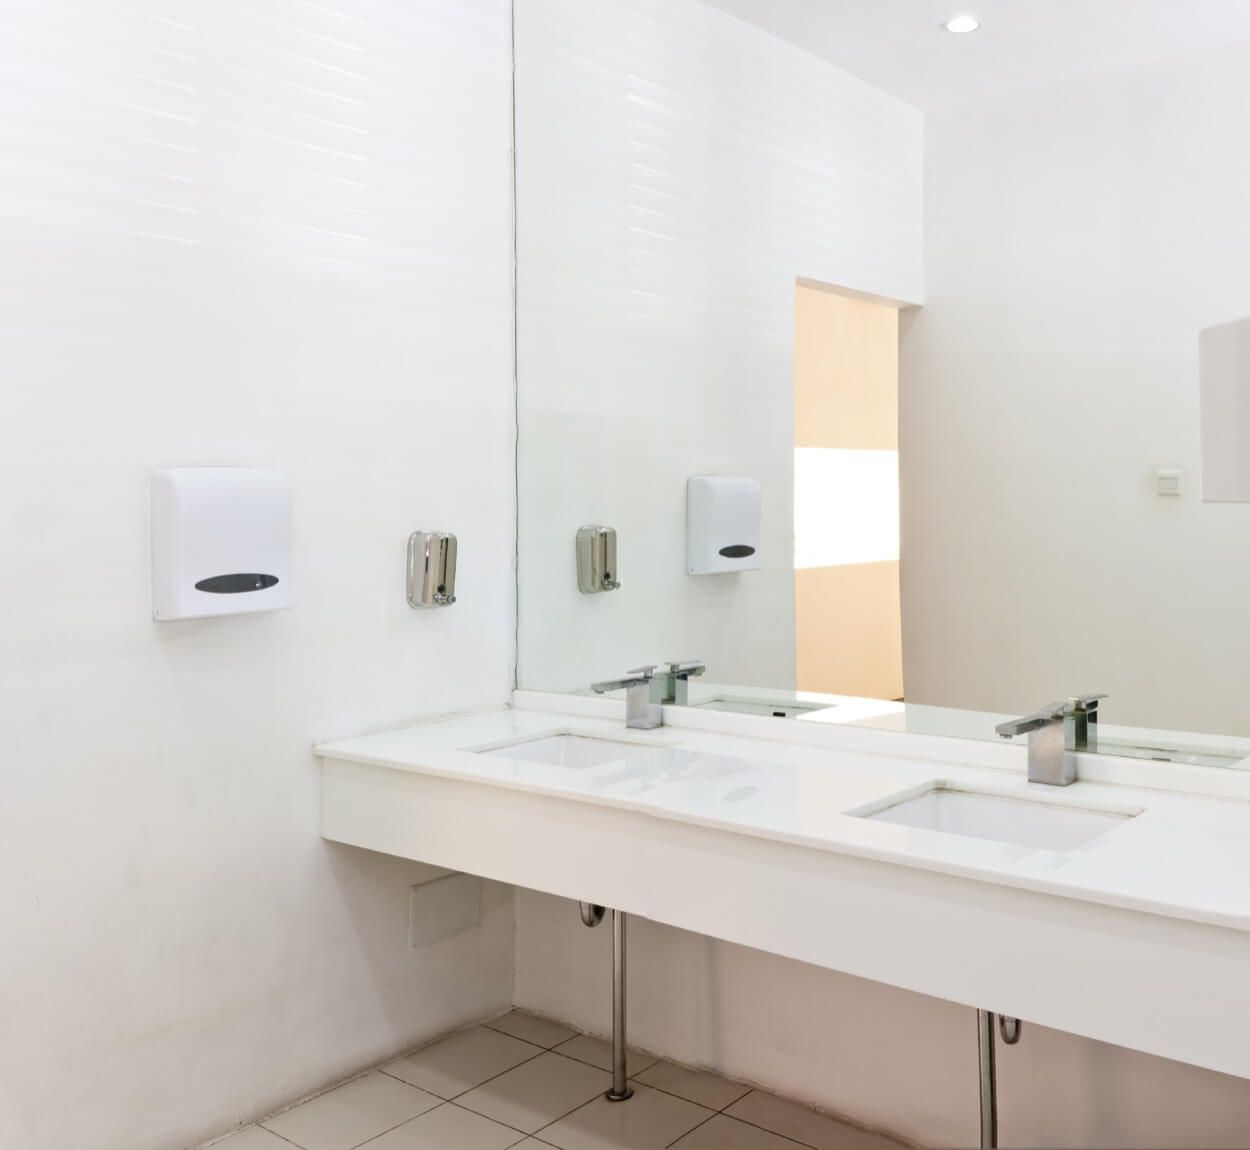 White Vanity With Double Inlaid Sinks And Large Mirror | Bathroom ...